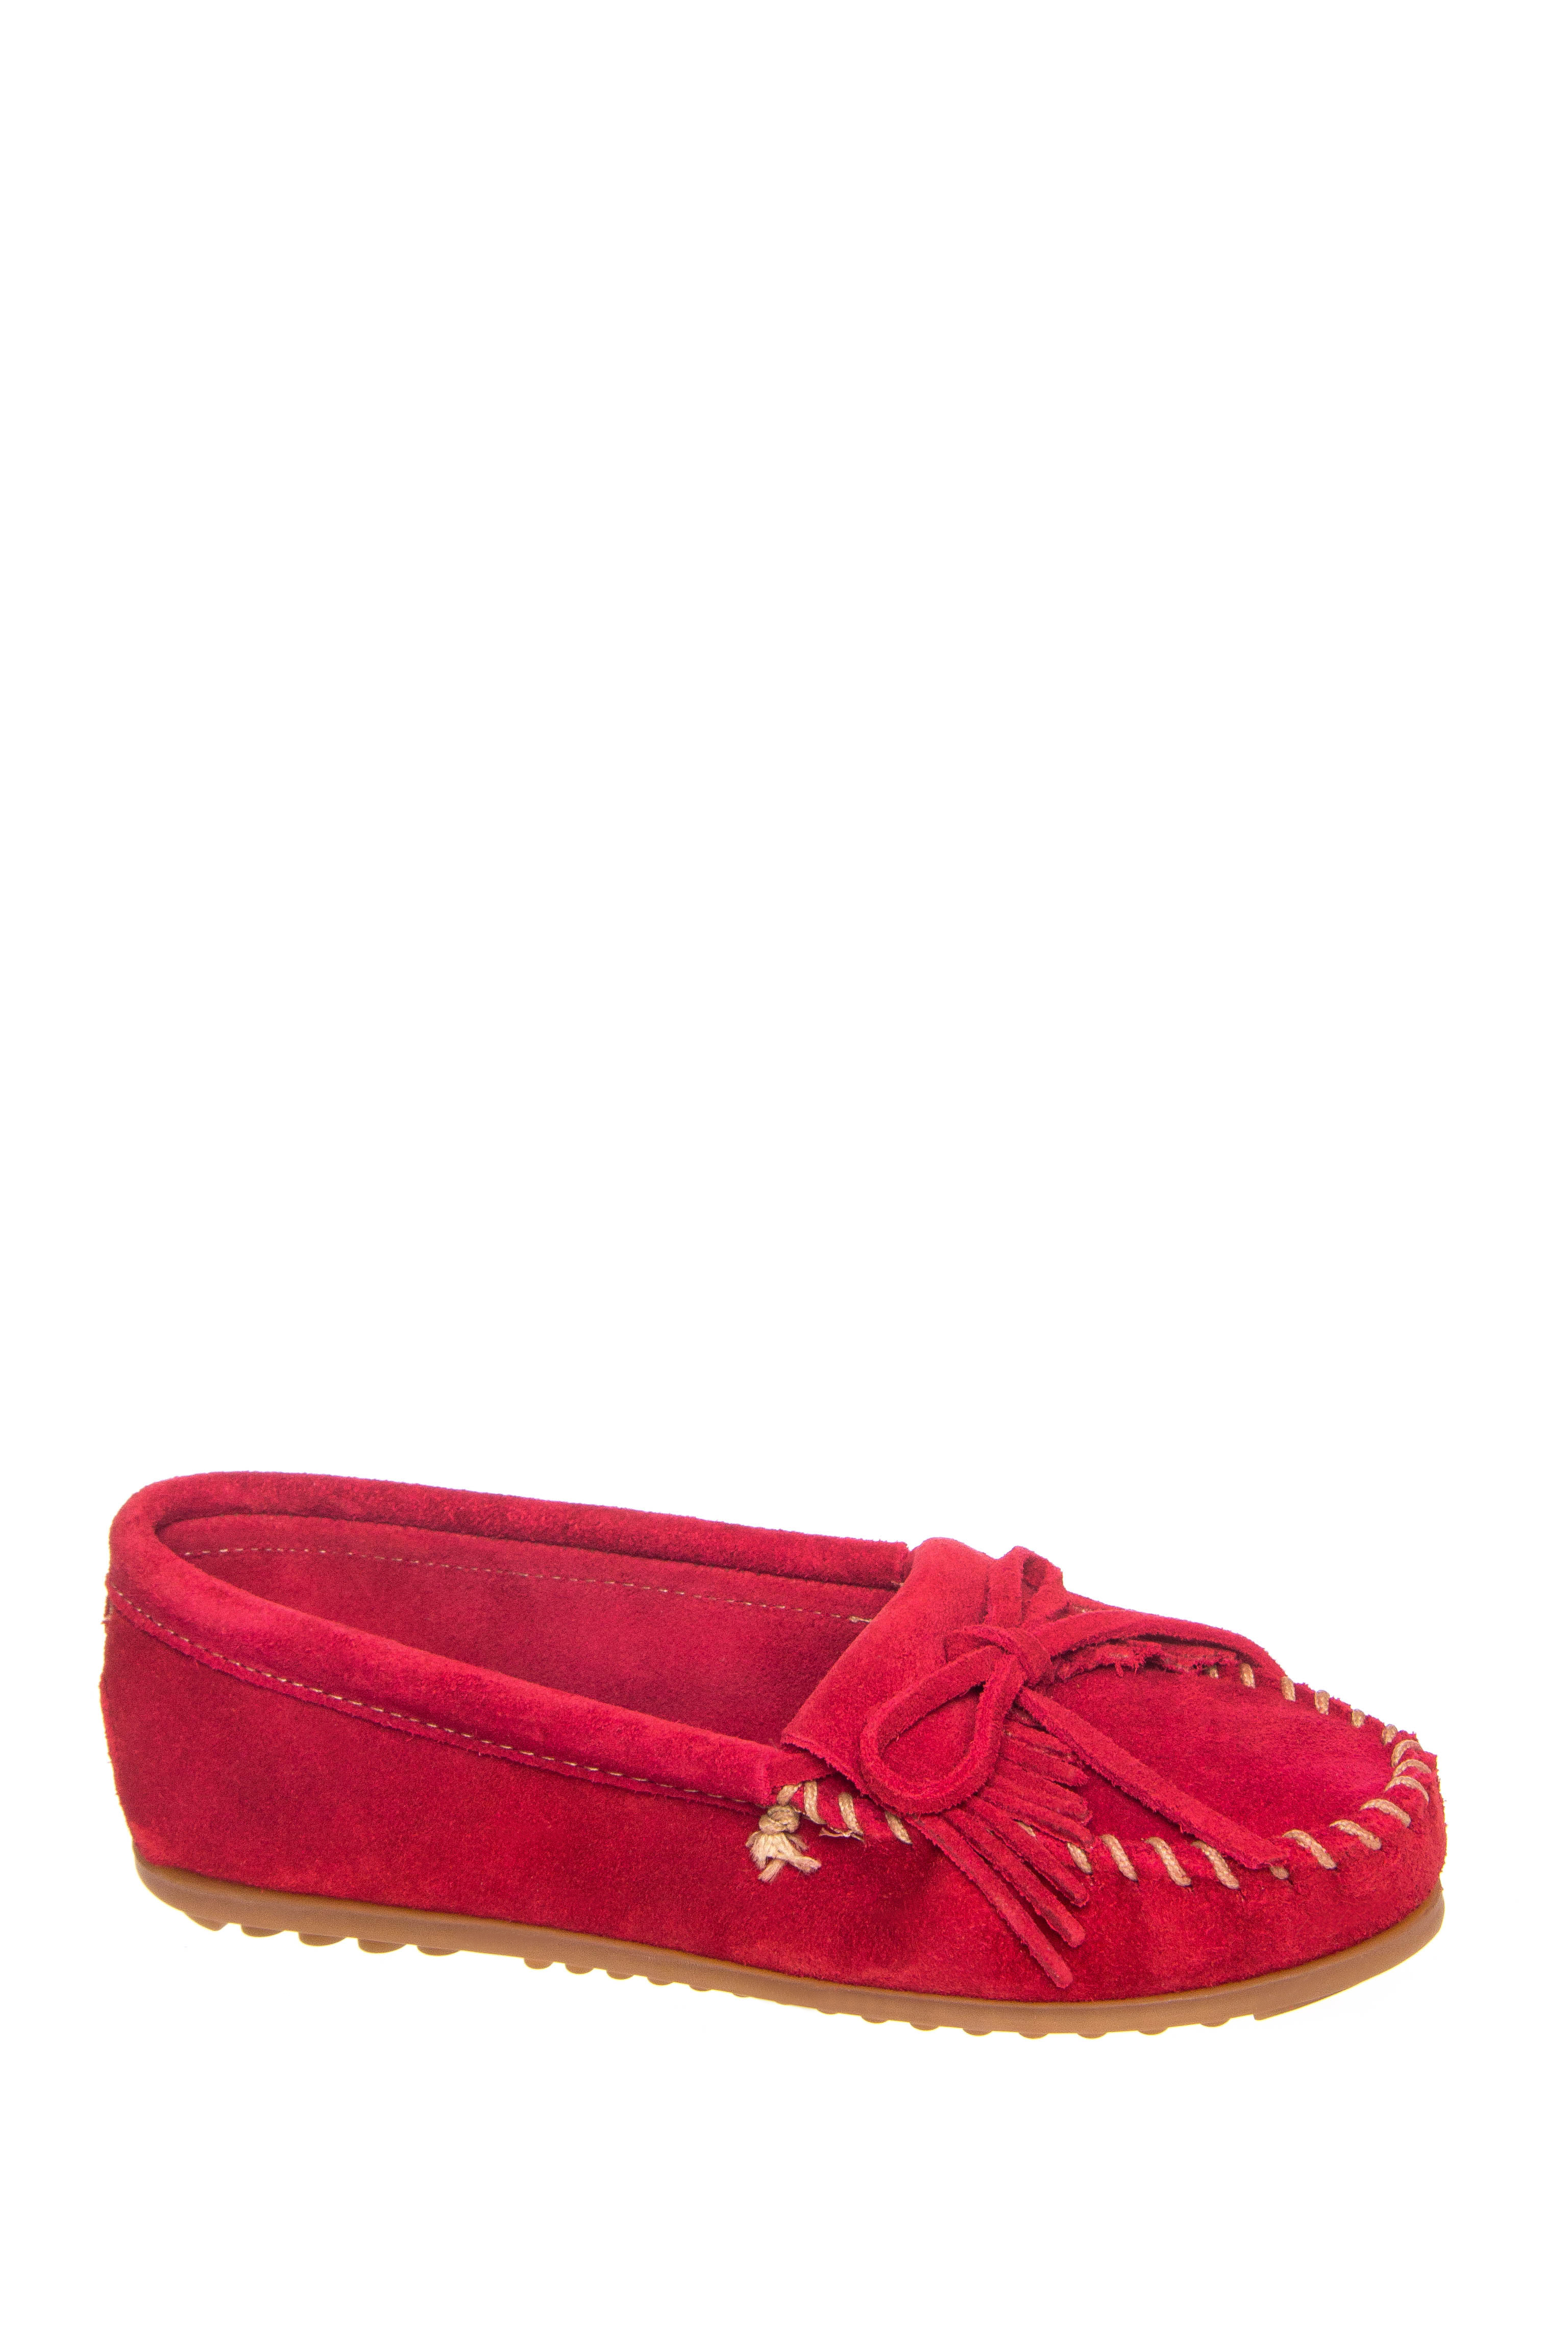 Minnetonka Kilty Suede Moccasins - Red